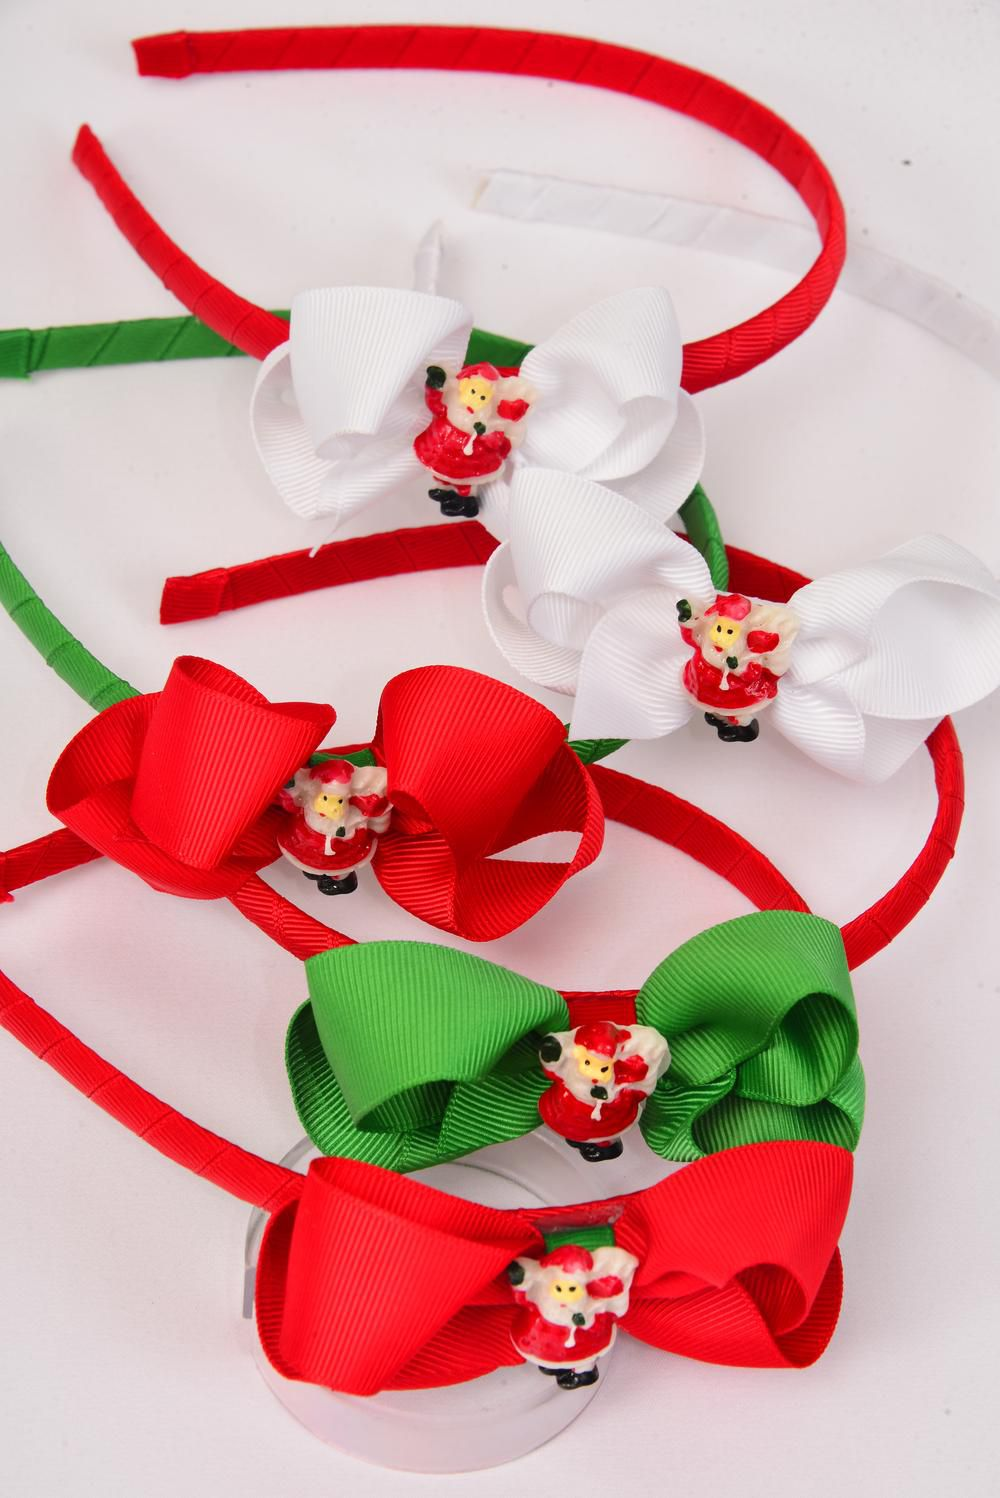 "Headband Horseshoe Xmas Grosgrain Fabric Bow-tie Santa Charm/DZ Bow Size-3""x 2"" wide,2 of each Color Asst,Hang Tag & UPC Code,W Clear Box -"